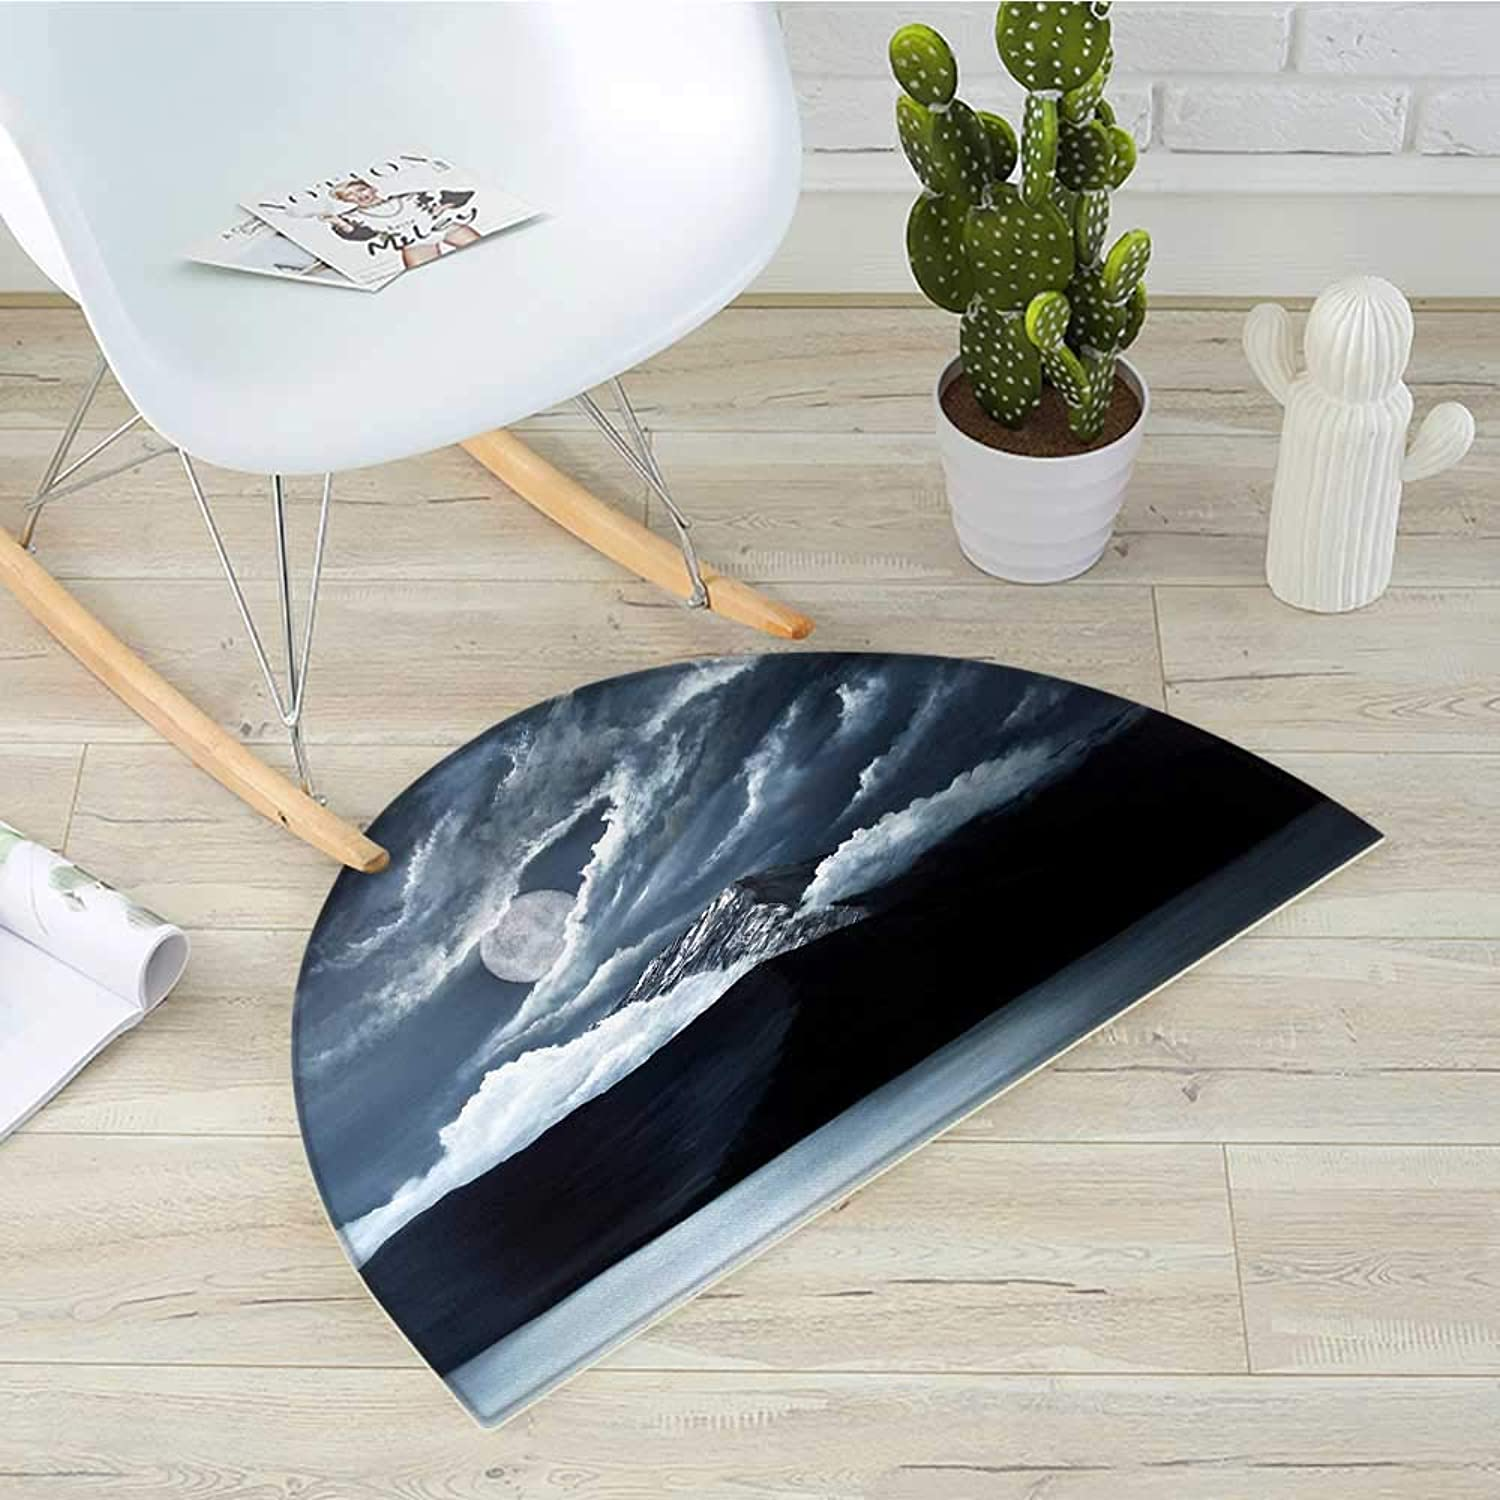 Landscape Semicircle Doormat Moon Over Lake and Hills with Dark Storm Clouds Twilight Times Dawn at Night Print Halfmoon doormats H 35.4  xD 53.1  Grey